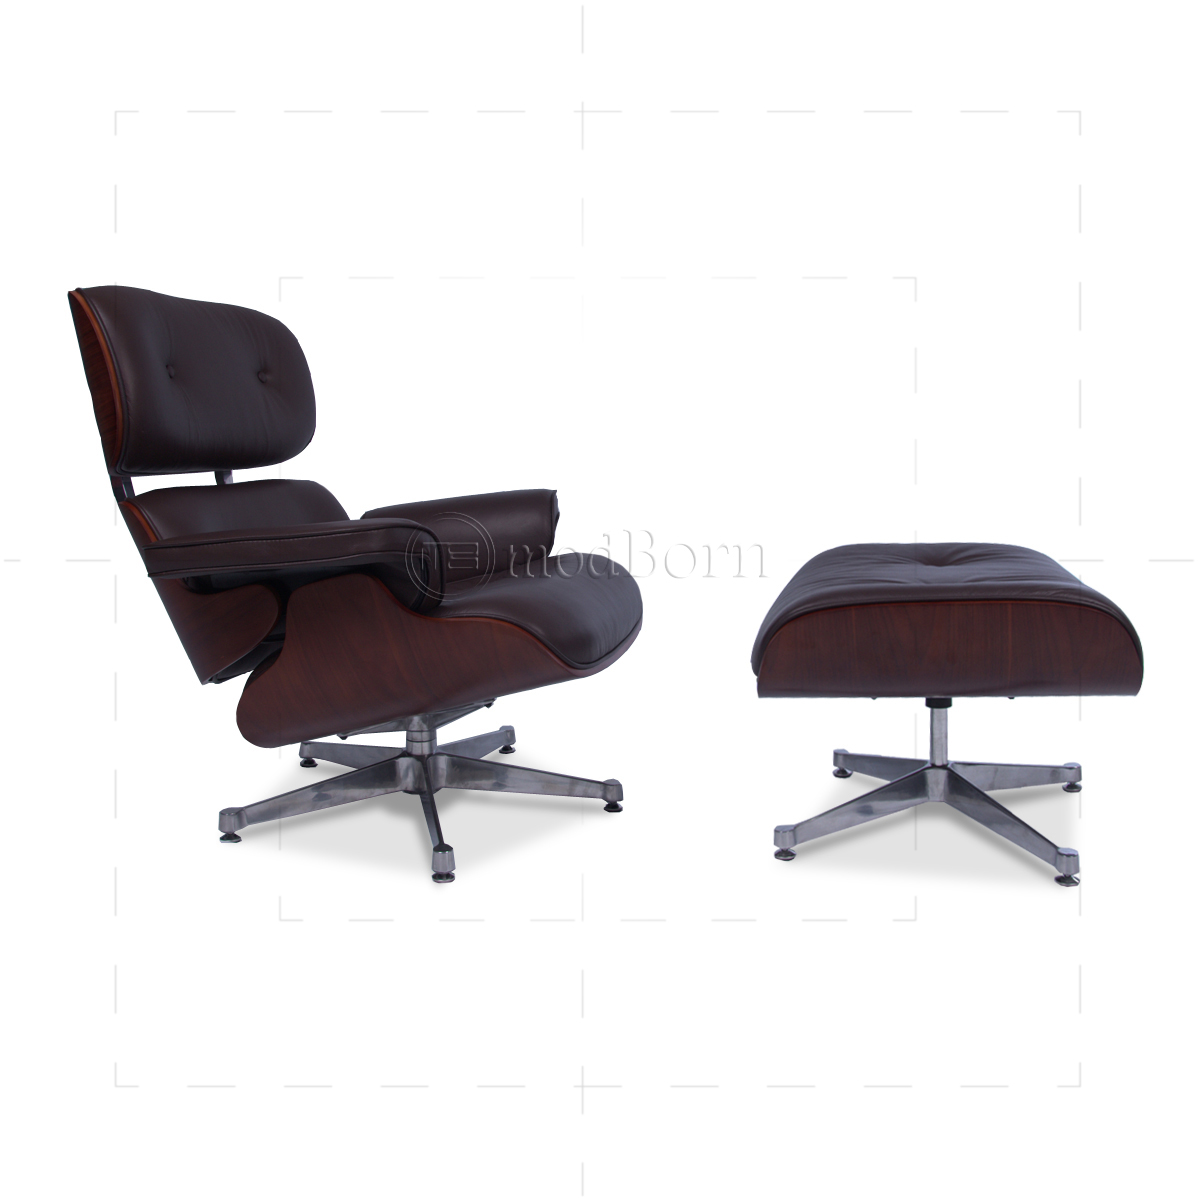 Eames Style Lounge Chair And Ottoman Brown Leather Cherry